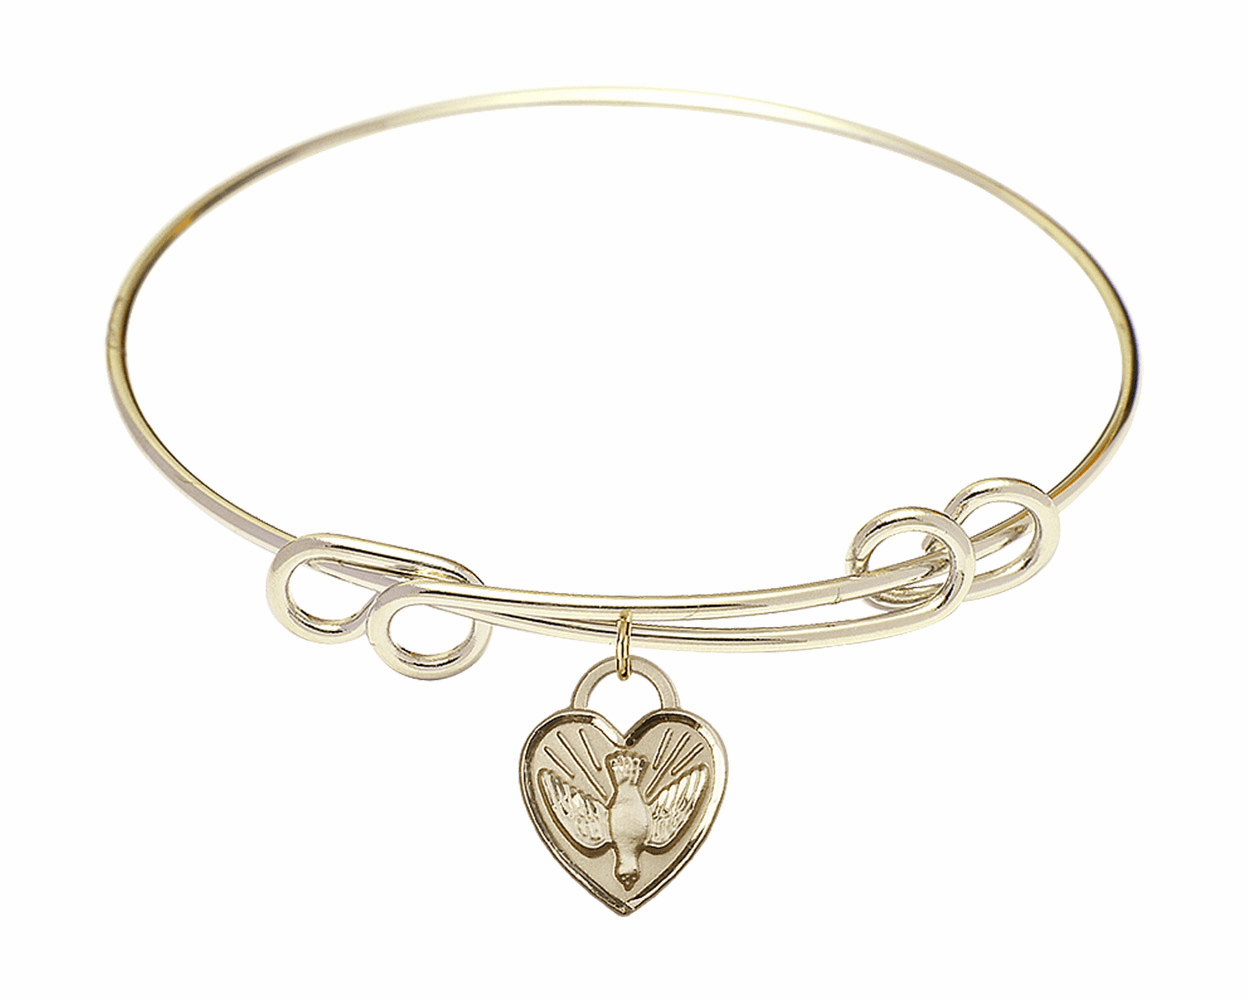 Round Double Loop Bangle Bracelet w/Dove Confirmation Heart Charm by Bliss Mfg